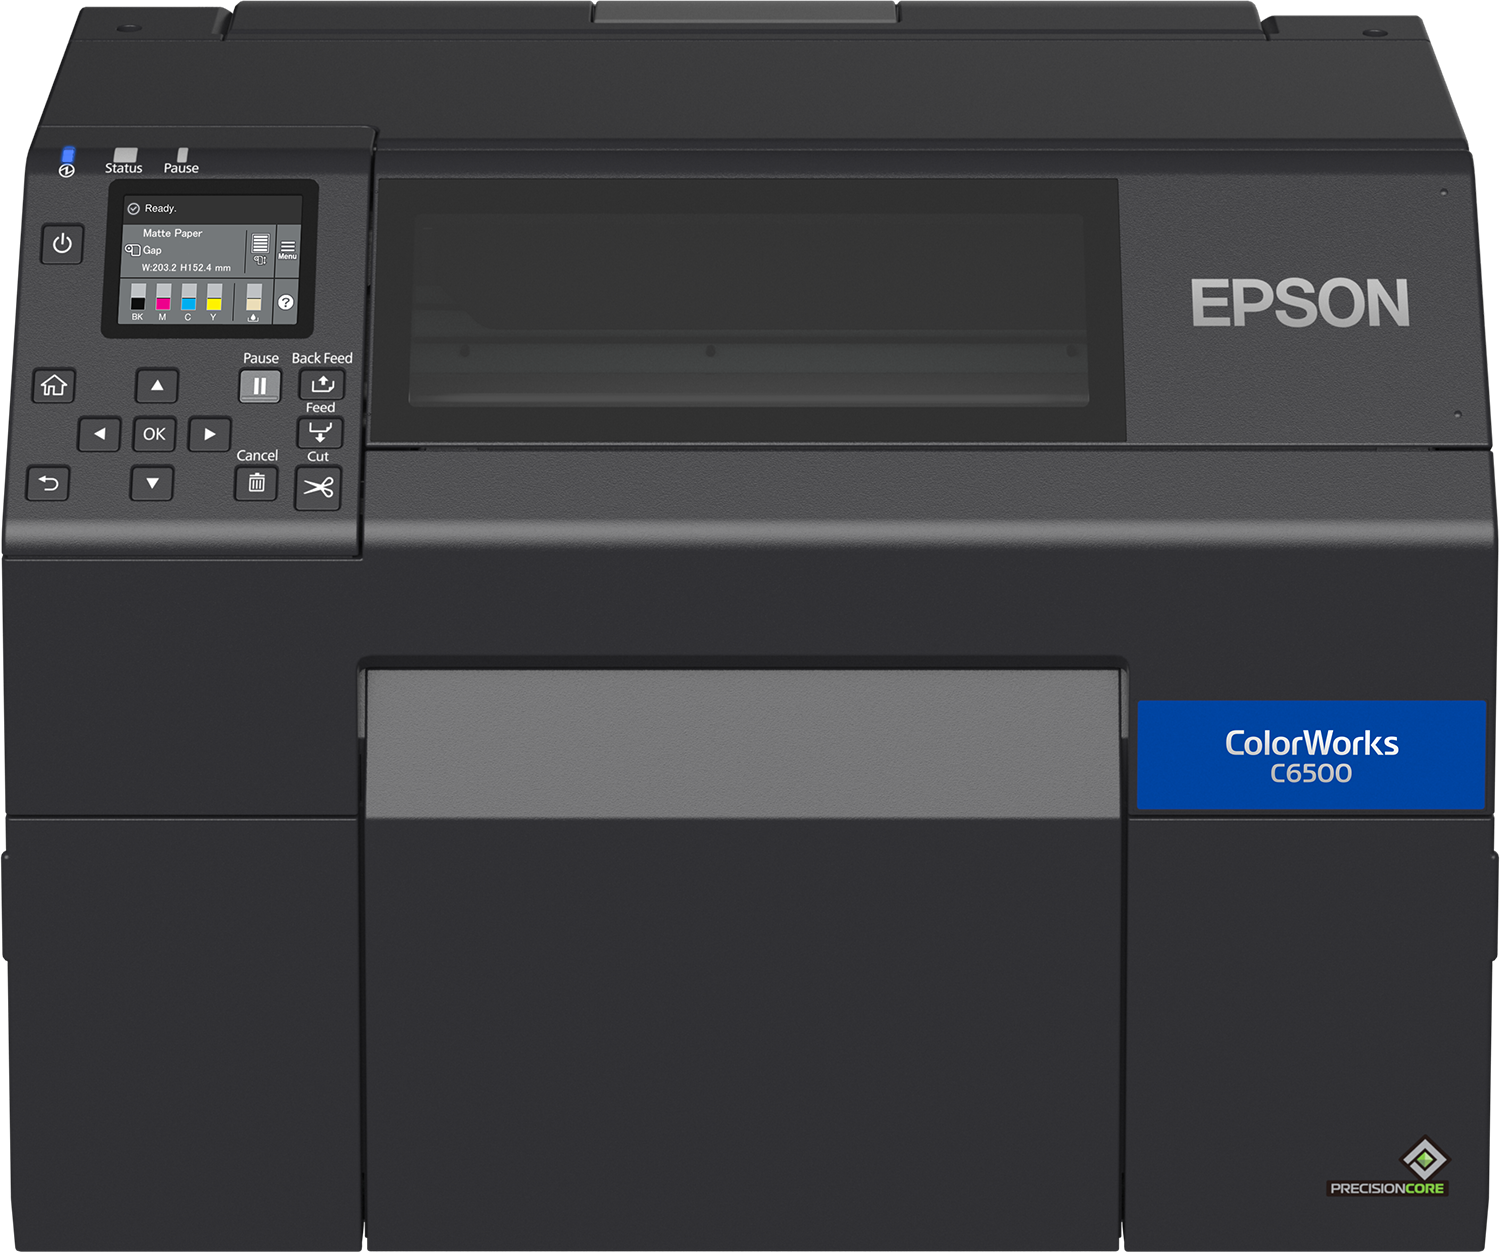 Epson ColorWorks C6500-PE mit Cutter